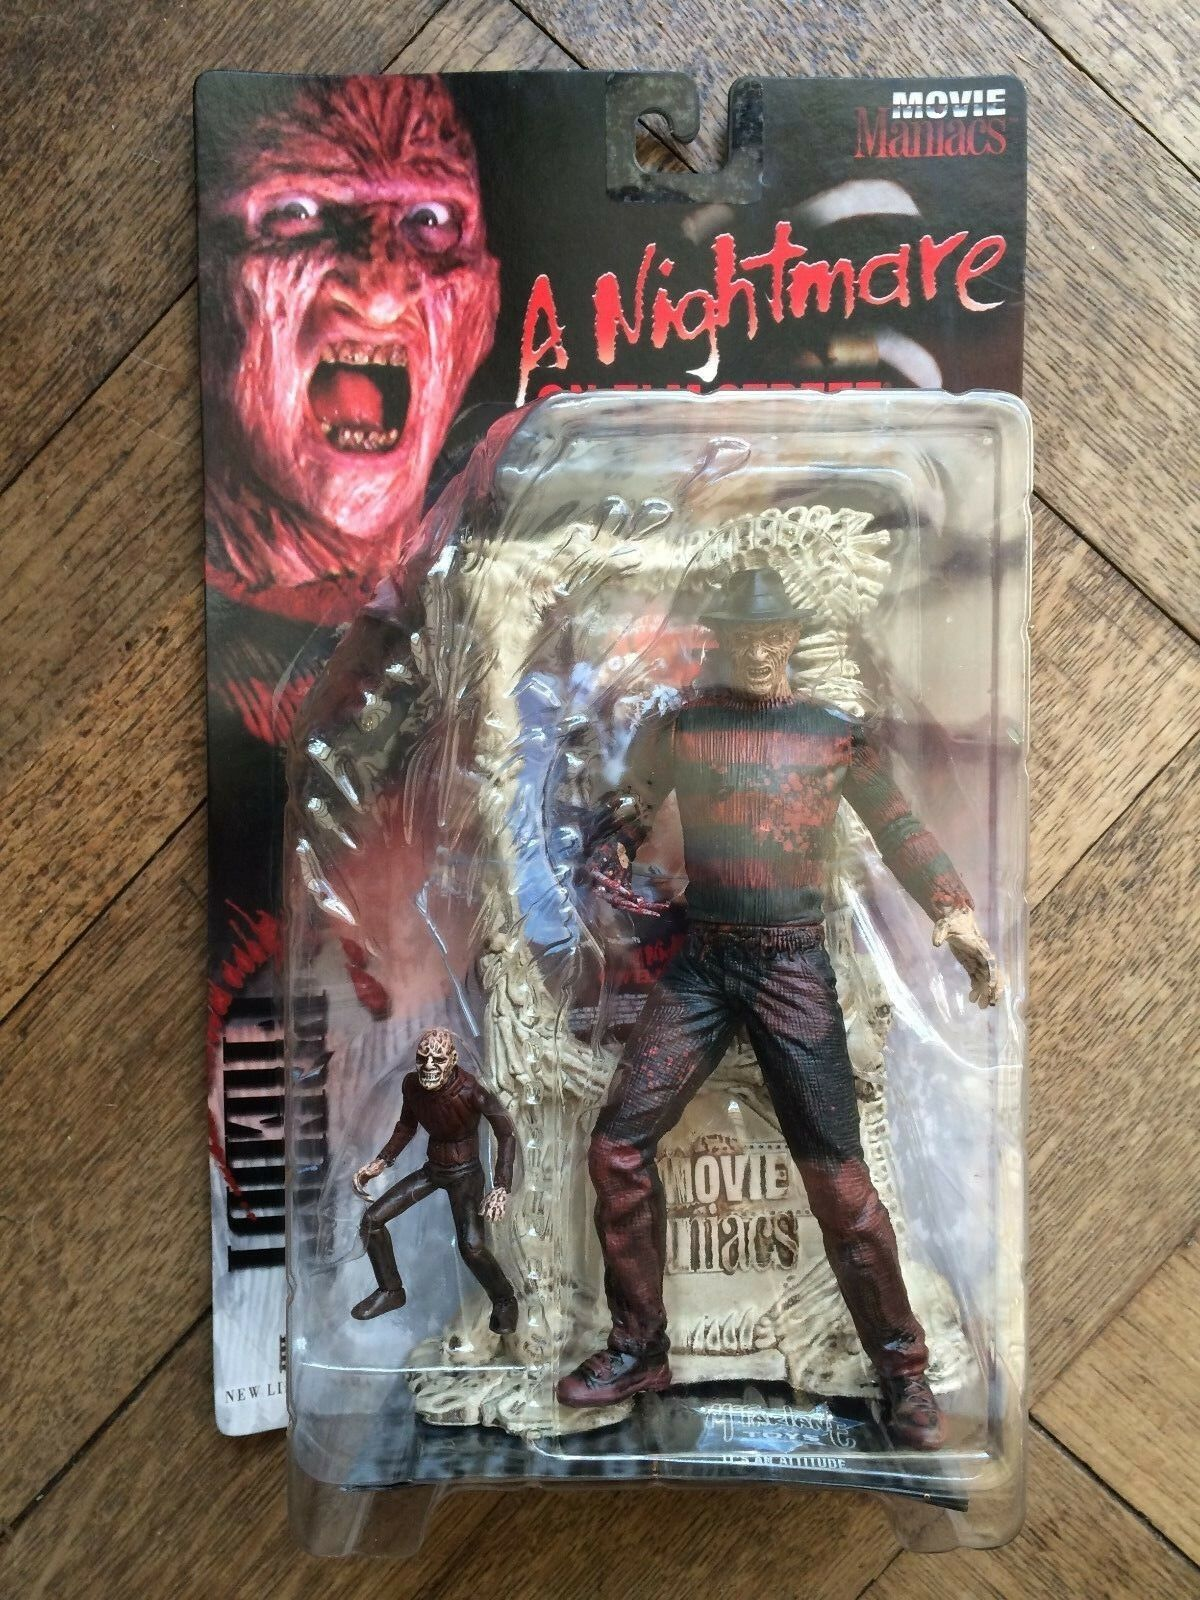 McFarlane MOVIE MANIACS FrotDY KRUEGER  Bloody variant variant variant WAS  NOW 6fe57b